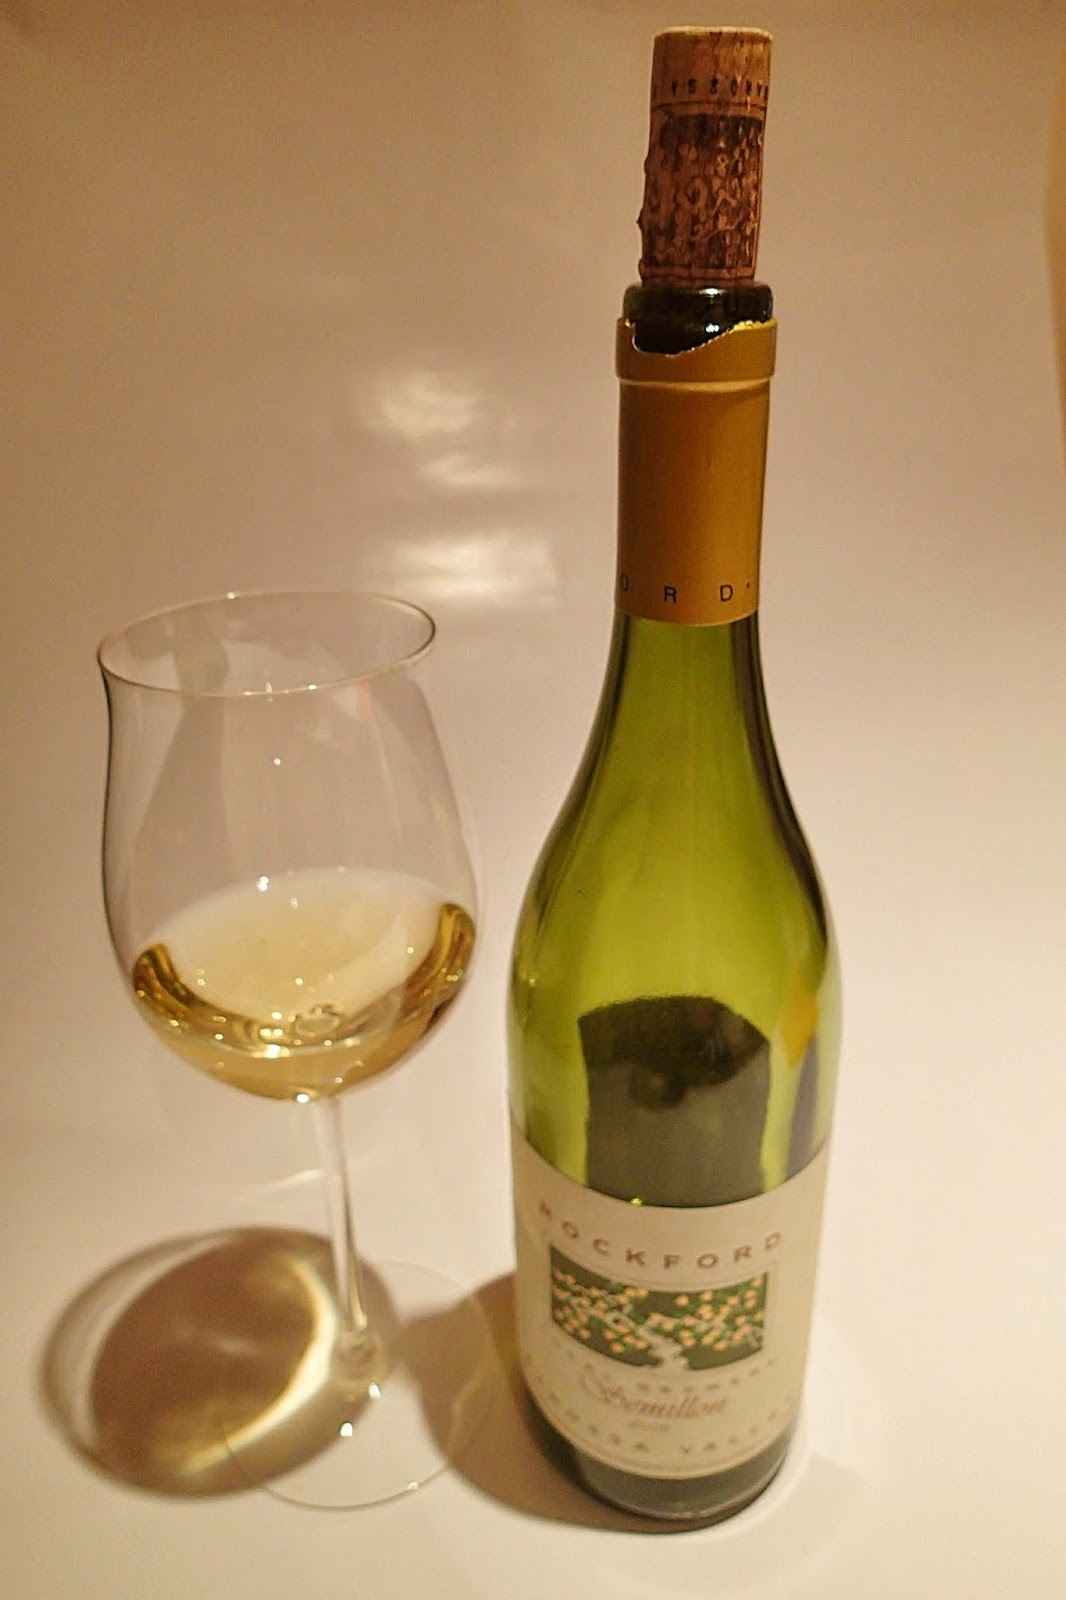 Rockford Local Growers Semillon 2006 Wine Tasting Review